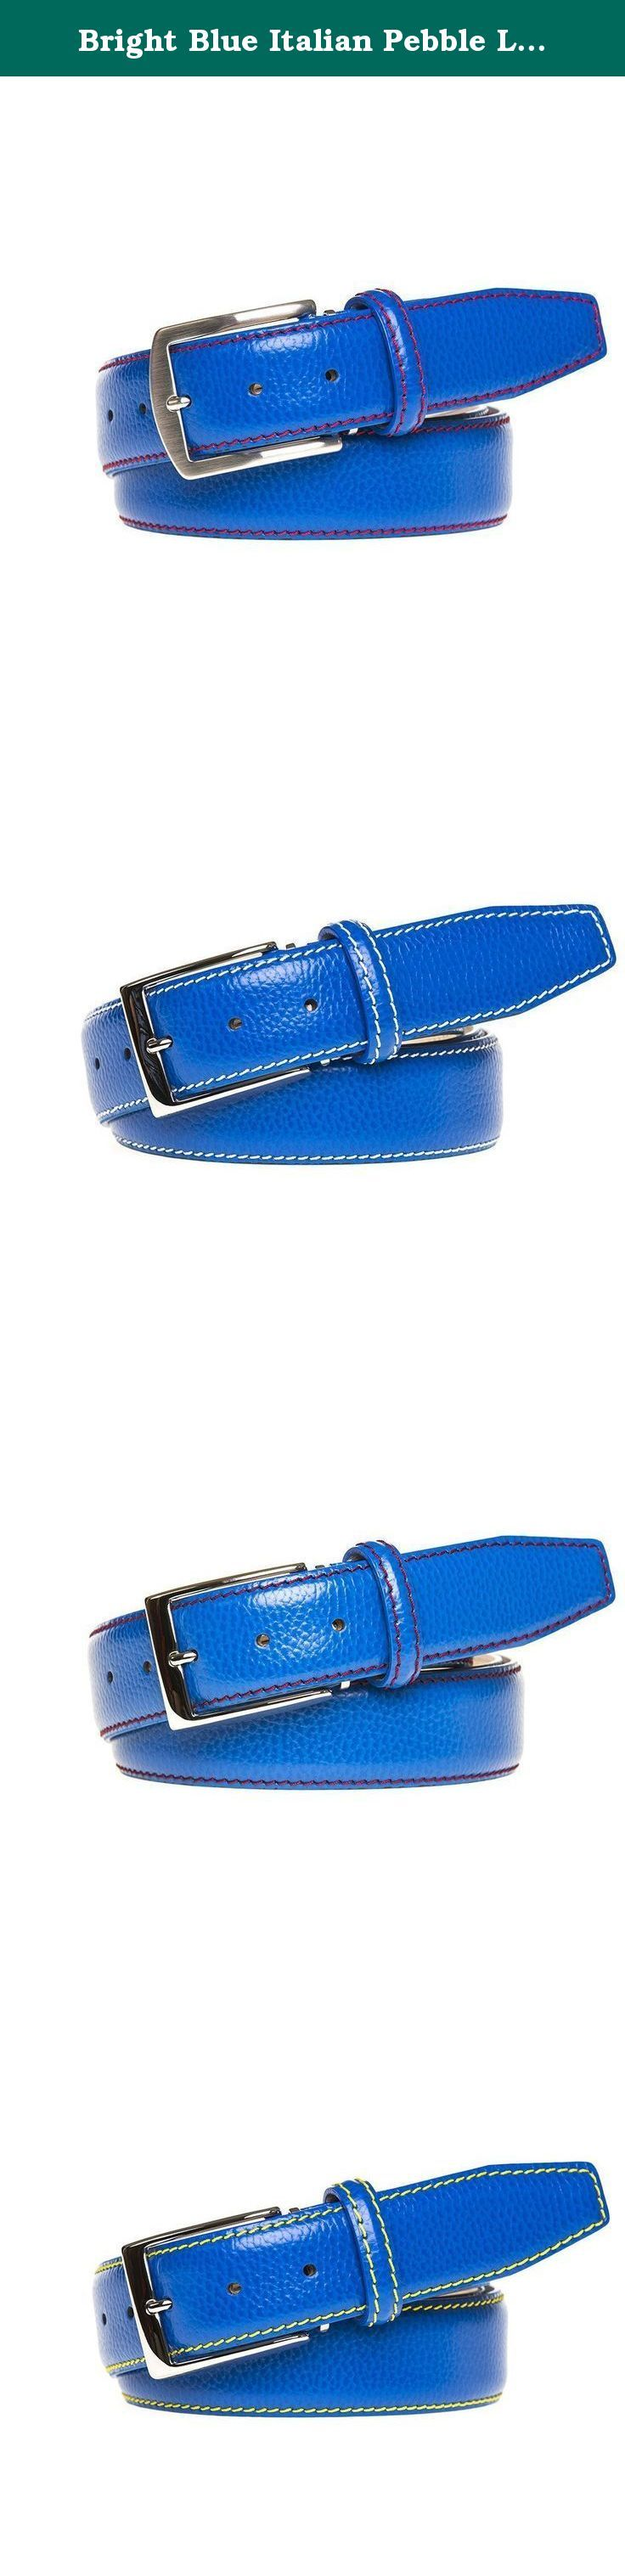 Bright Blue Italian Pebble Leather Belt. Made from 100% Italian Calf Leather and handmade to order. All of our leather products are made in the USA. Each belt is designed with a Nubuck lining and solid brass palladium buckle to ensure extra durability. In addition, each belt comes with a signature travel bag to store your belt in.